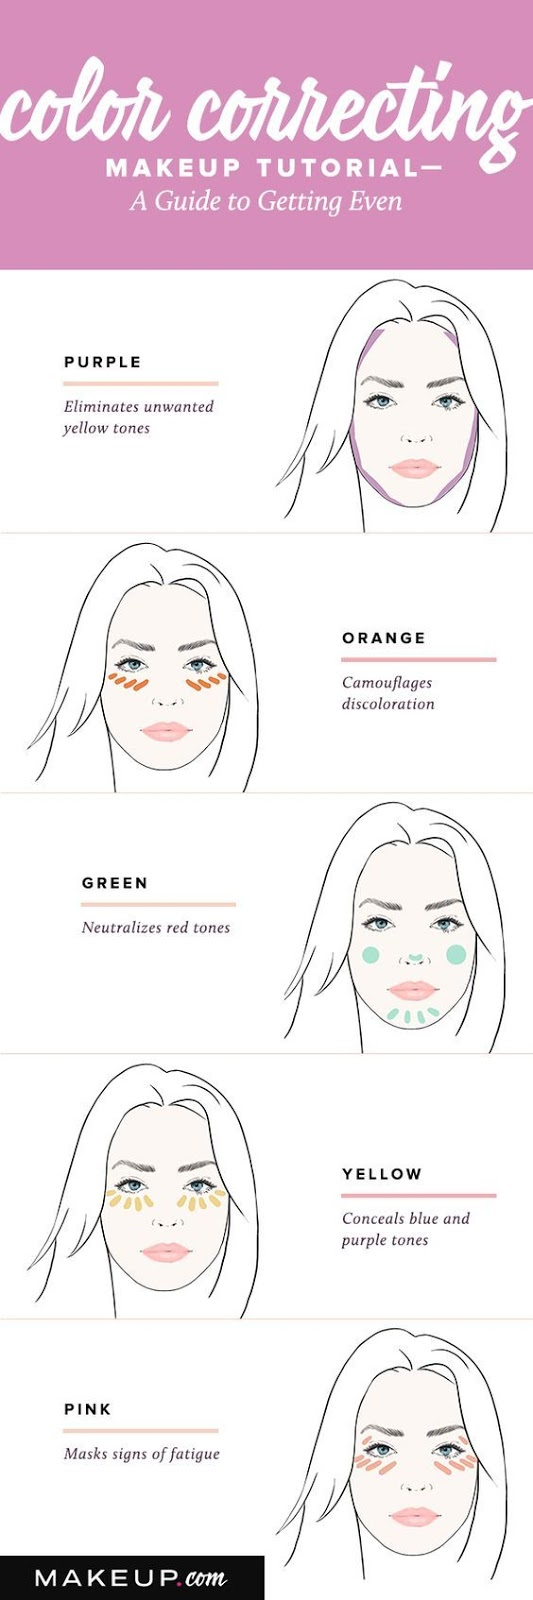 YOUR STEP-BY-STEP GUIDE TO USING COLOR-CORRECTING MAKEUP